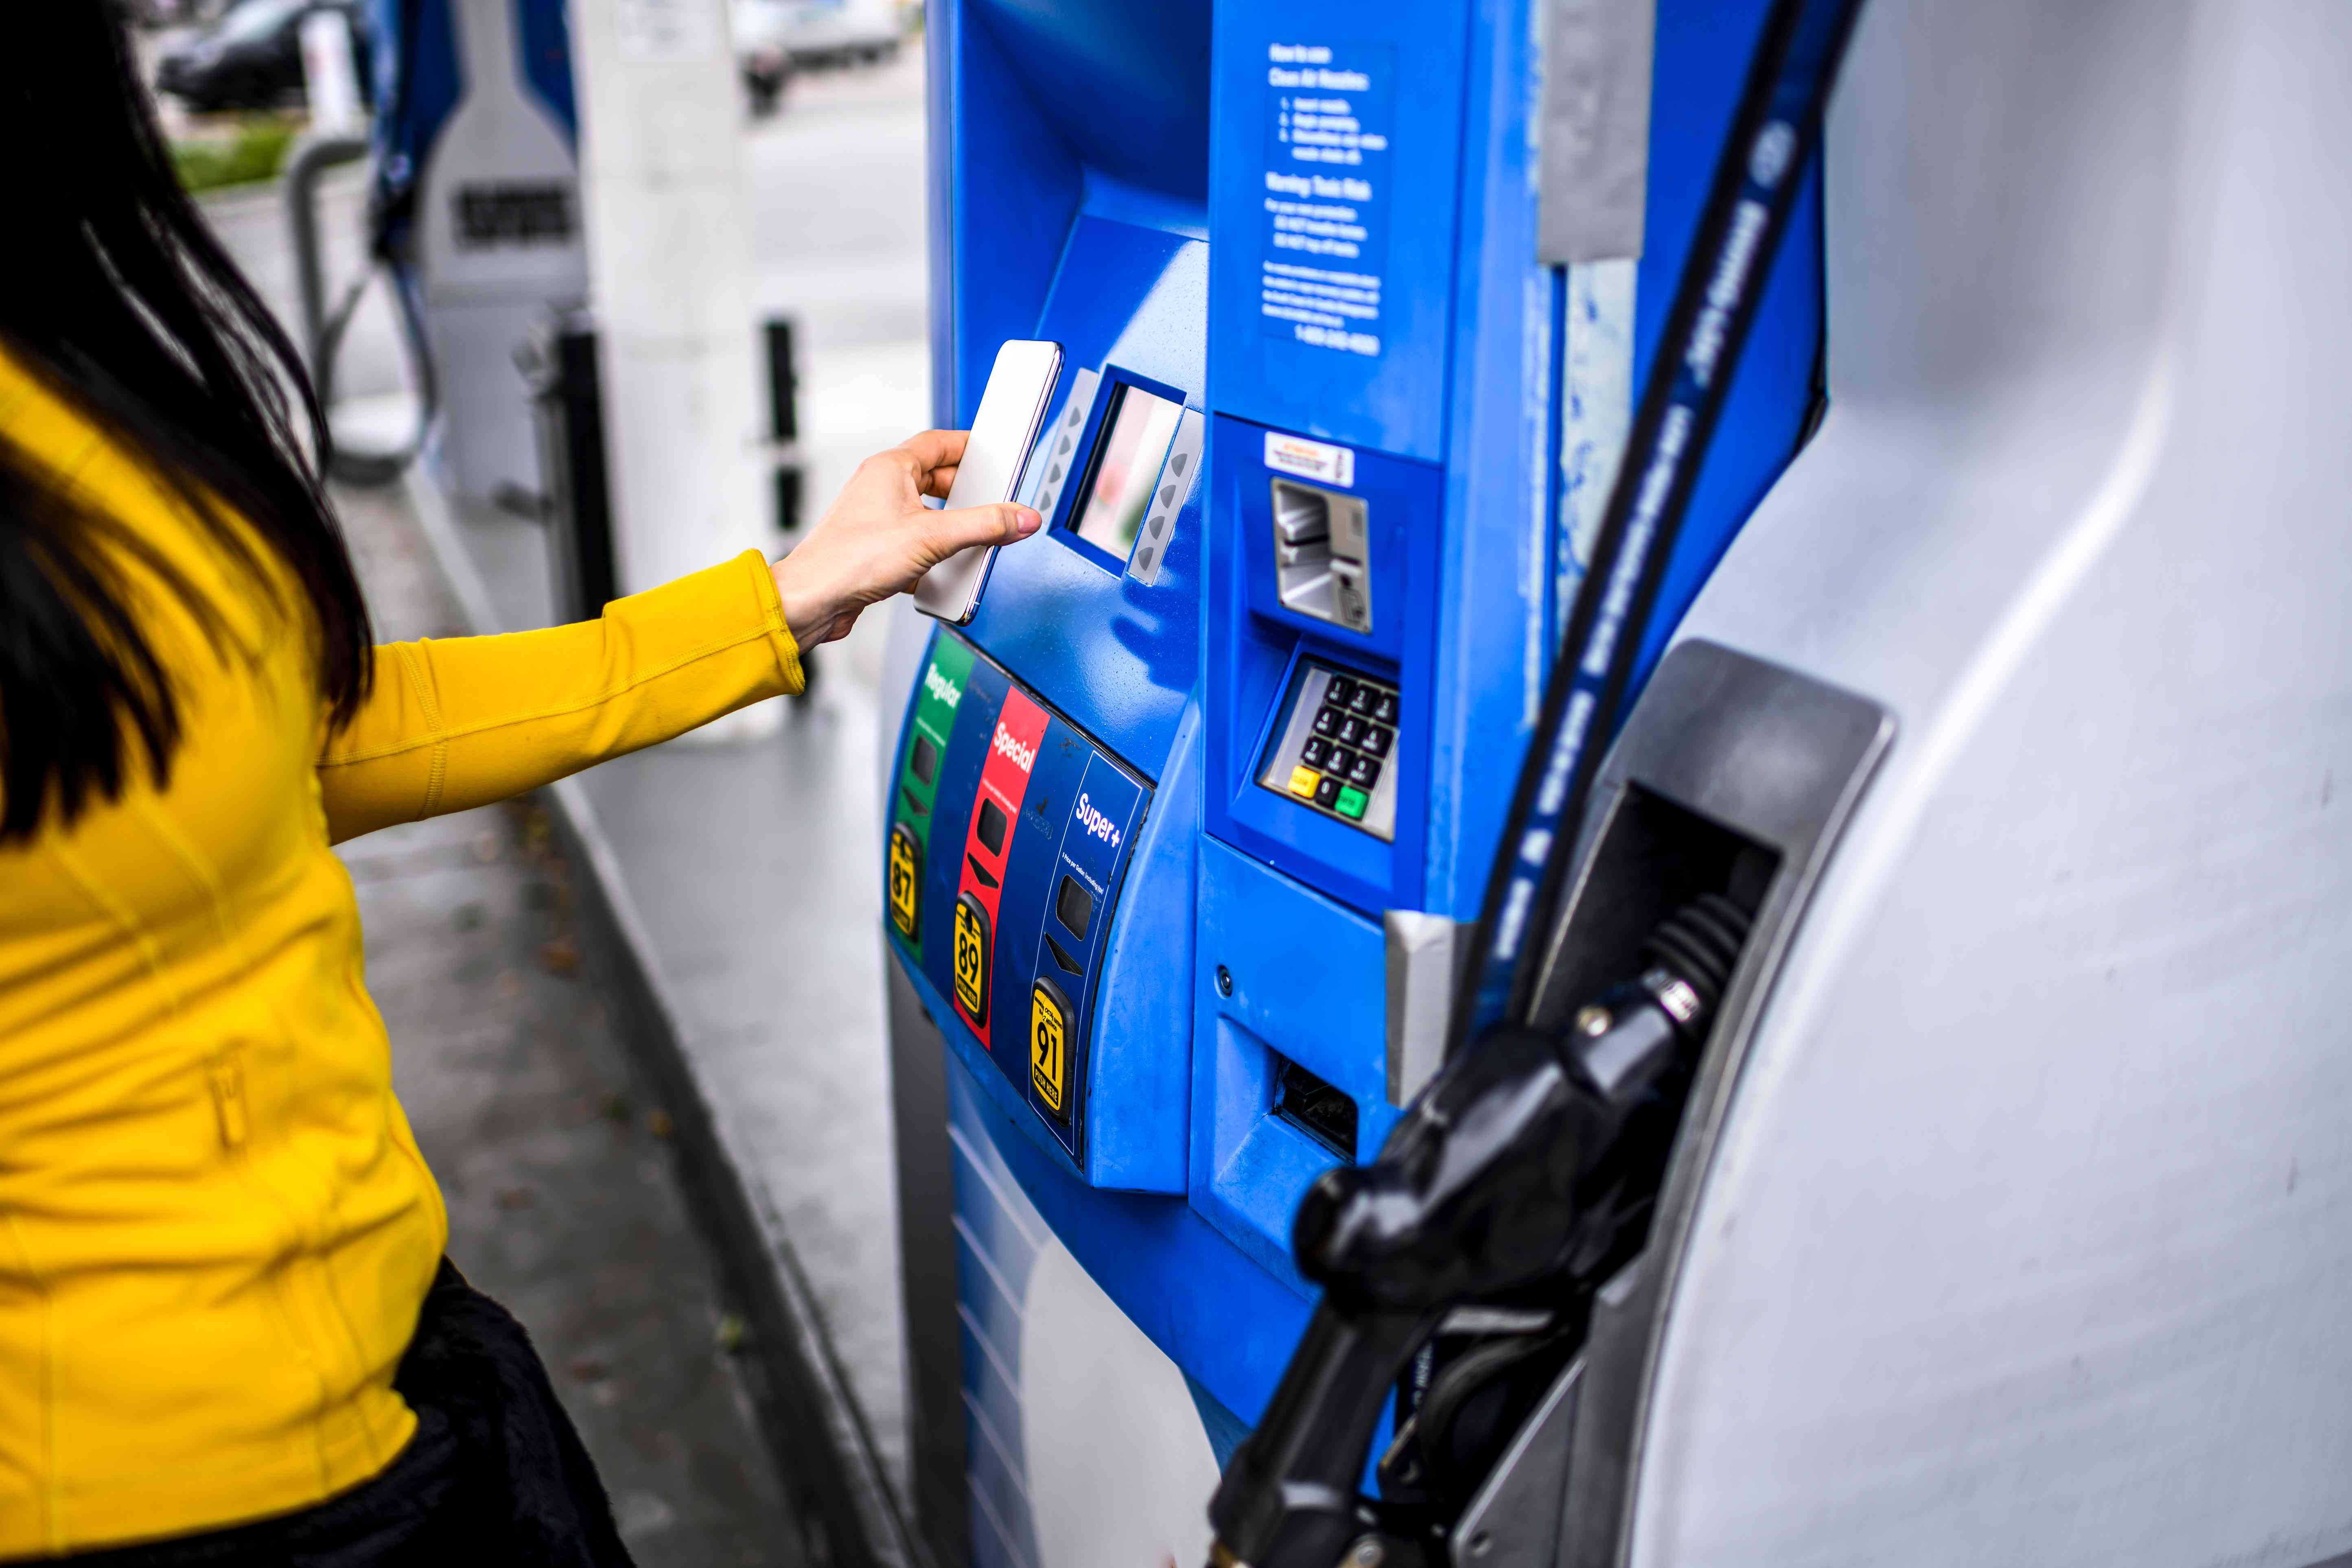 Making a contactless payment with a mobile phone at a gas station.